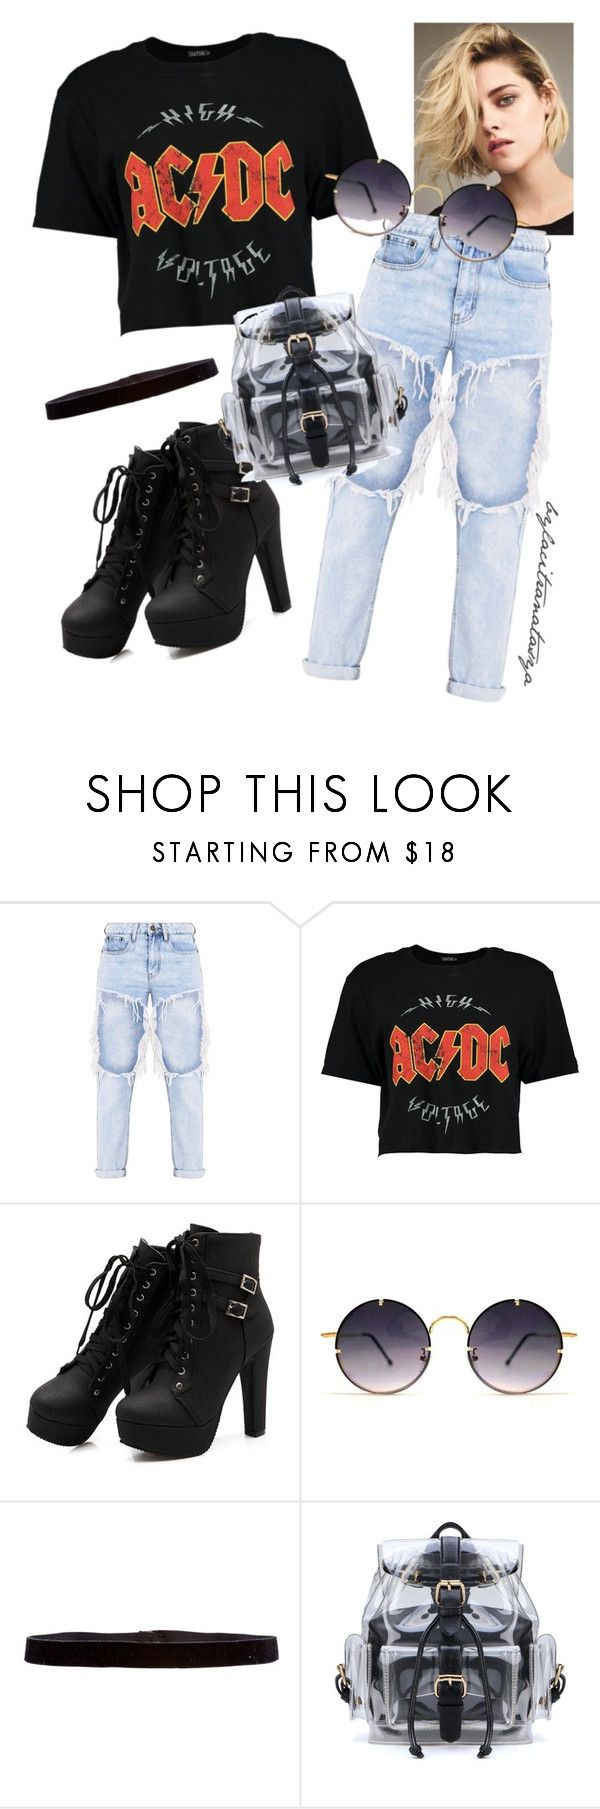 BLACK T-SHIRT X JEANS by bylacitranatasya on Polyvore featuring Boohoo, Steve Madden and Spitfire